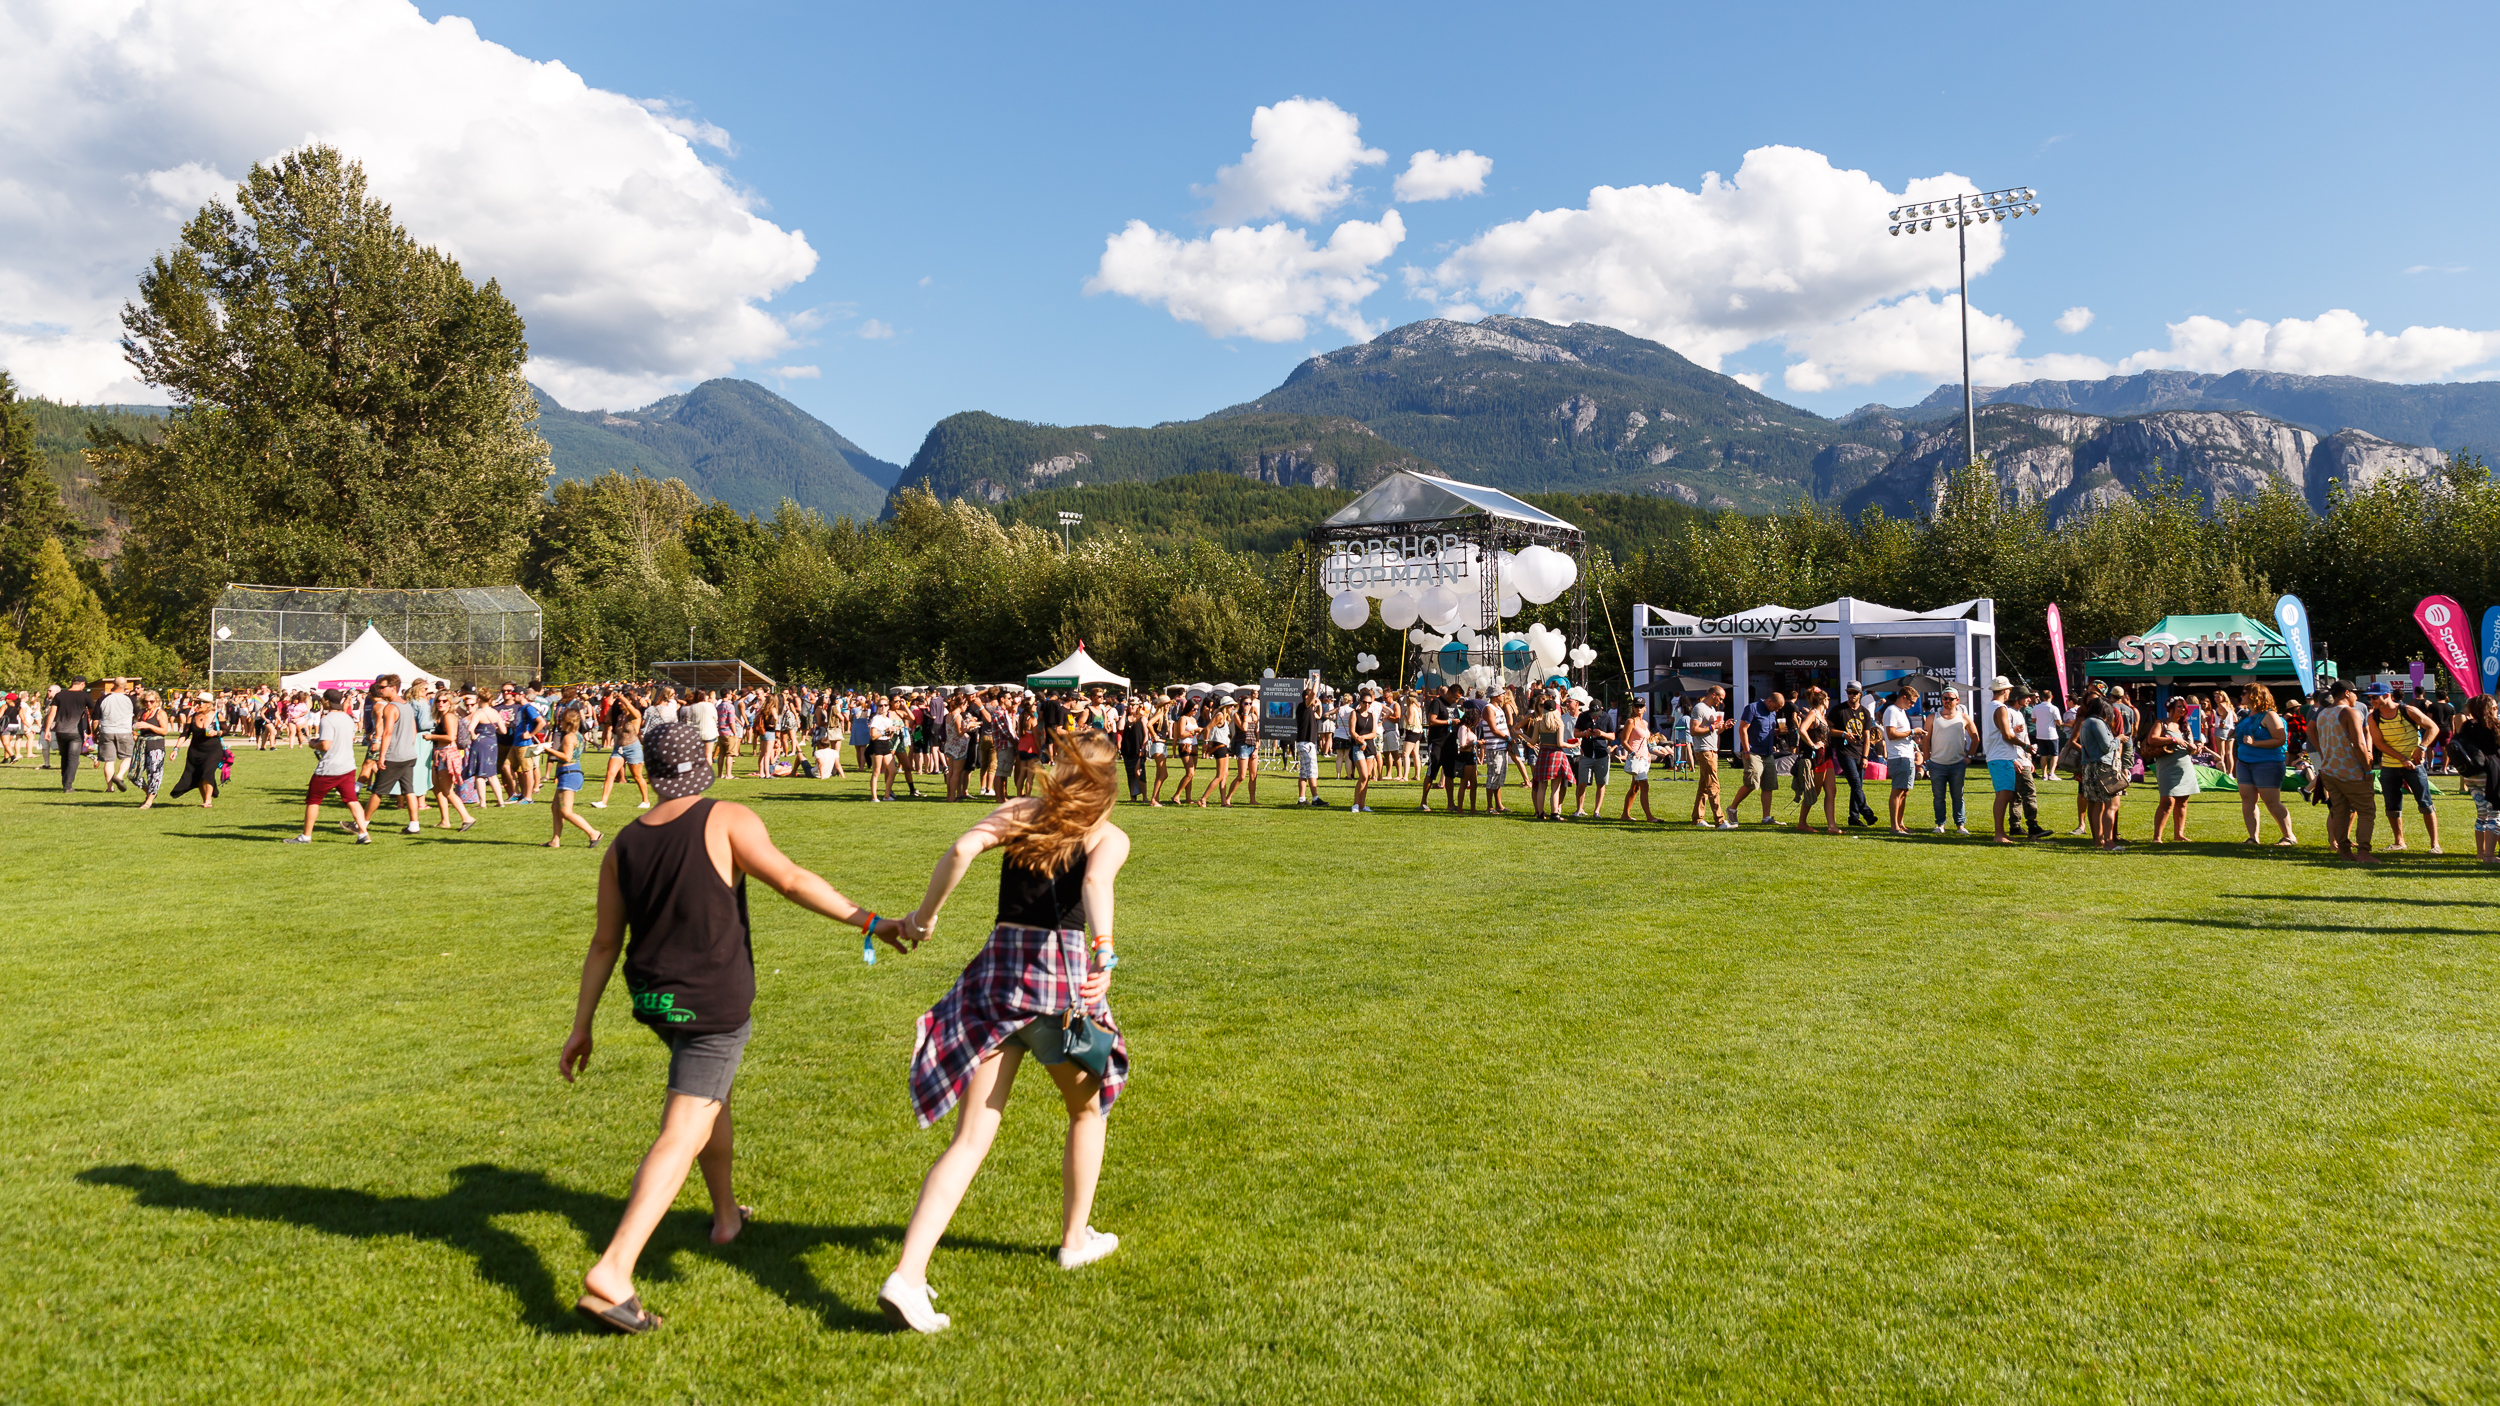 Squamish-Valley-Music-Festival-image-11.jpg